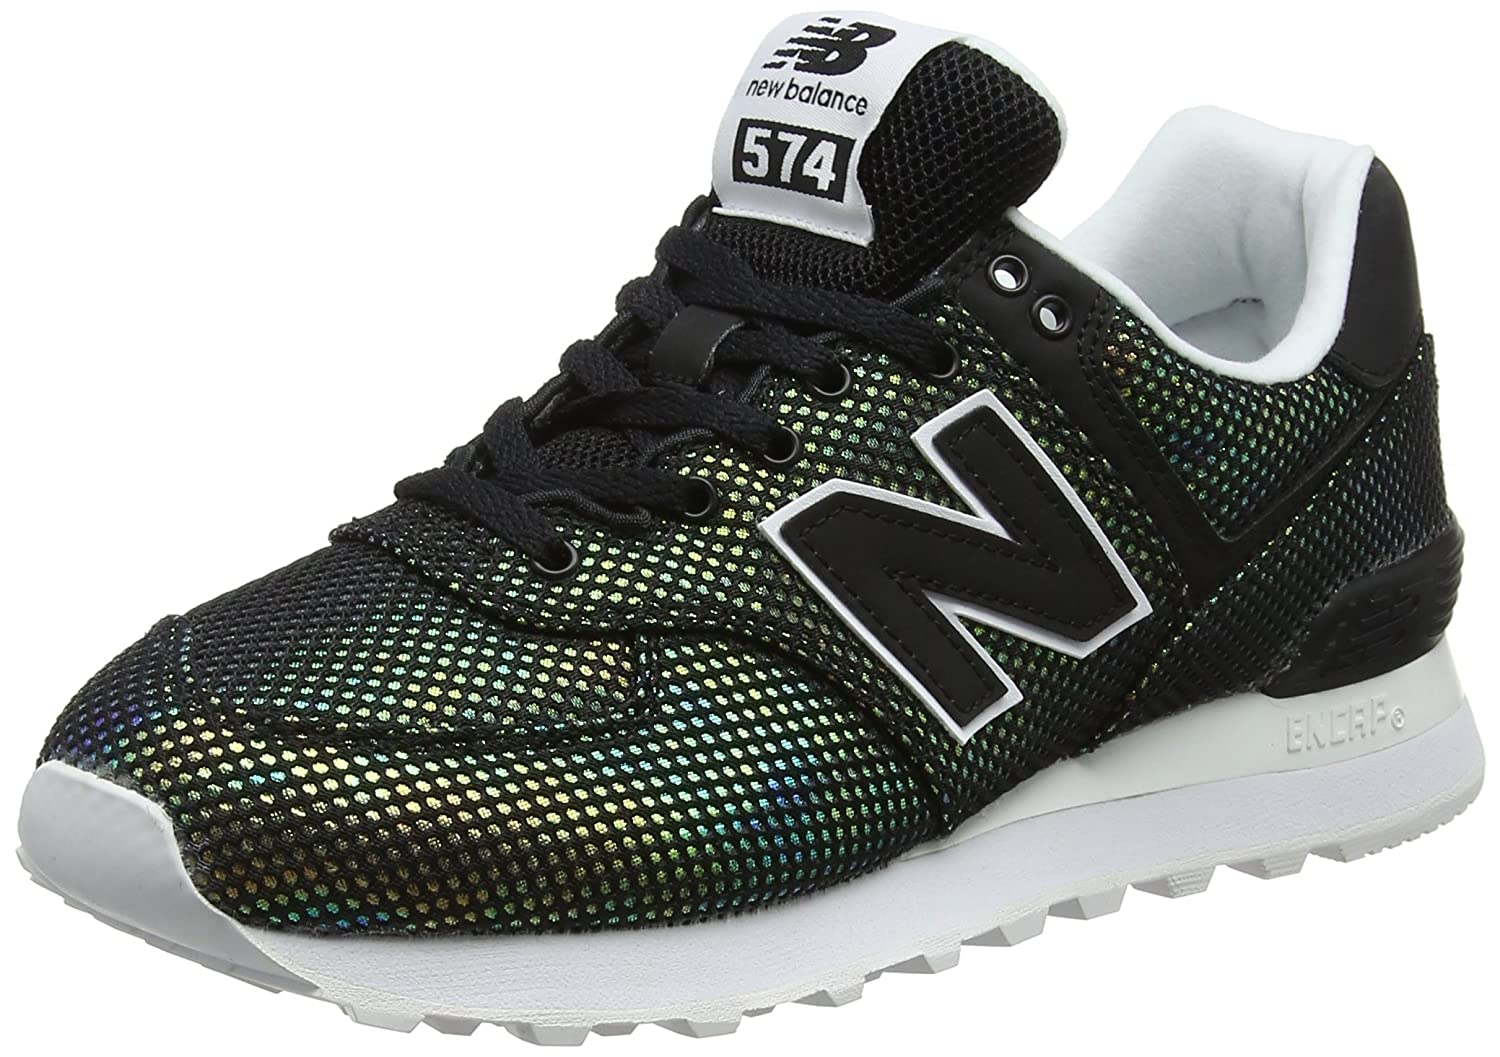 New Balance Women's 574v2 Sneaker B0751SDLQ7 8.5 B(M) US|Black/White